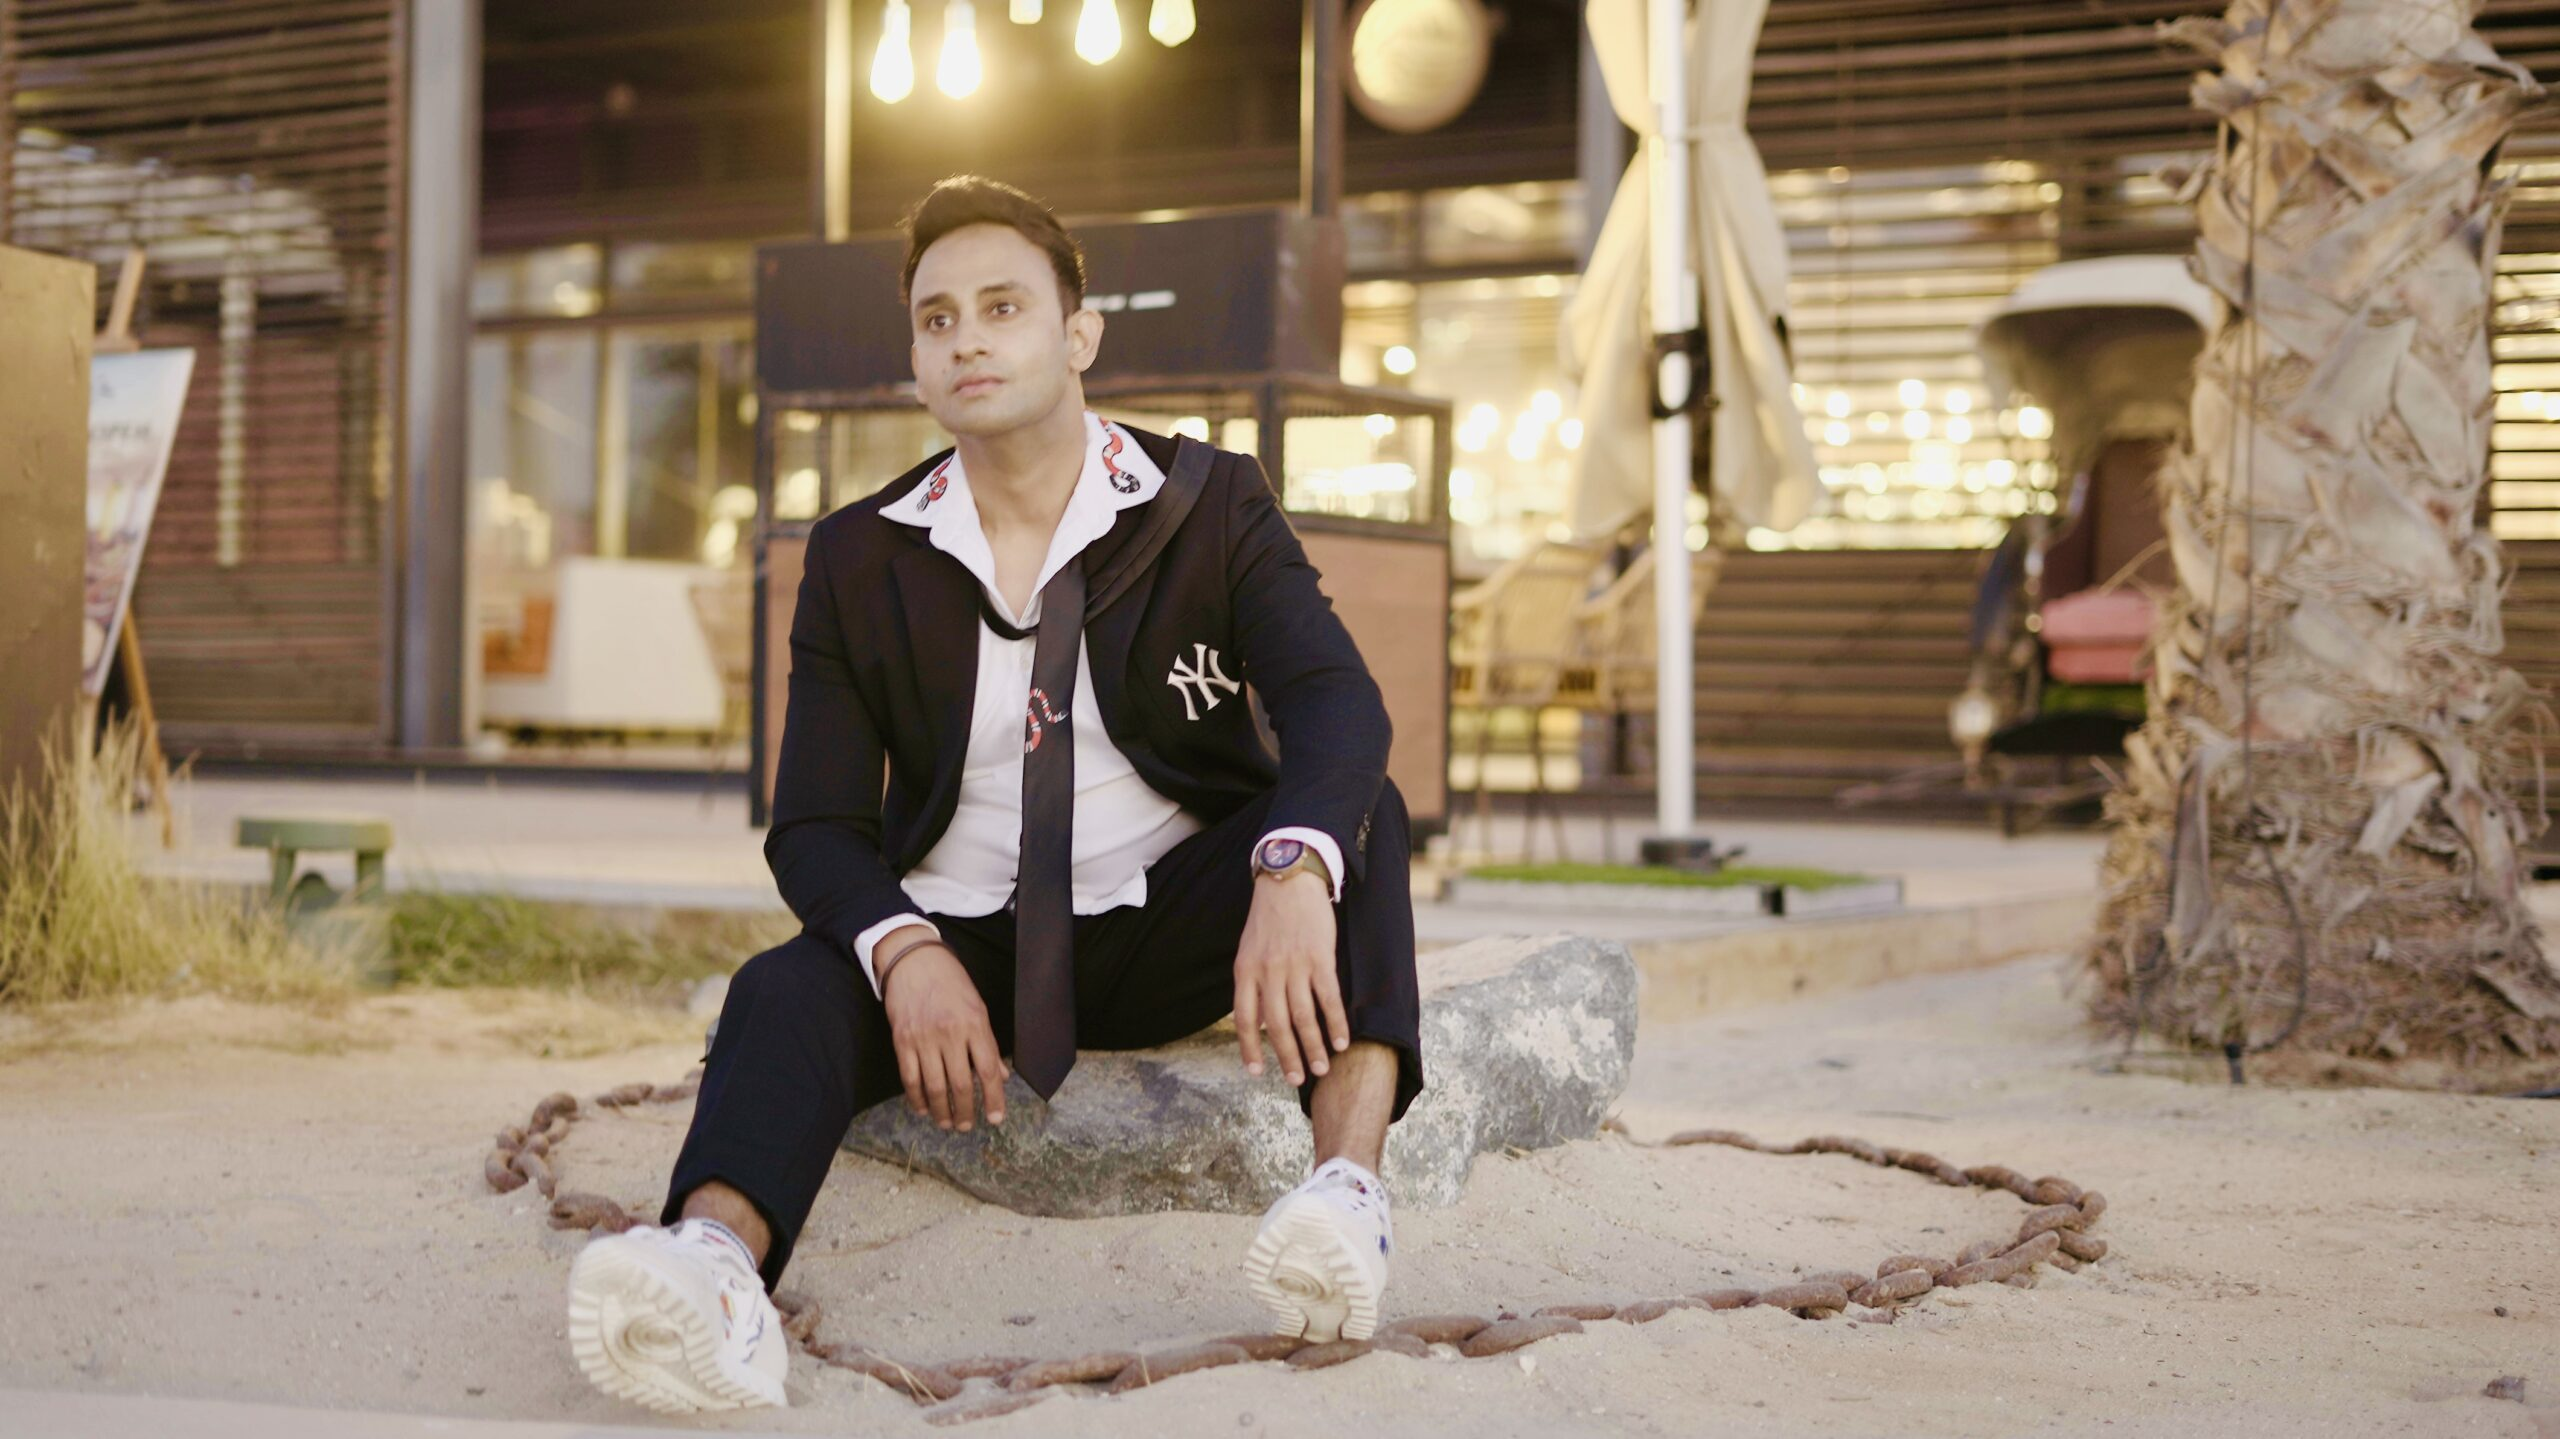 Anurag Desiworldwide, Fashion Icon of Haryana is ready to collab with top Indian artist